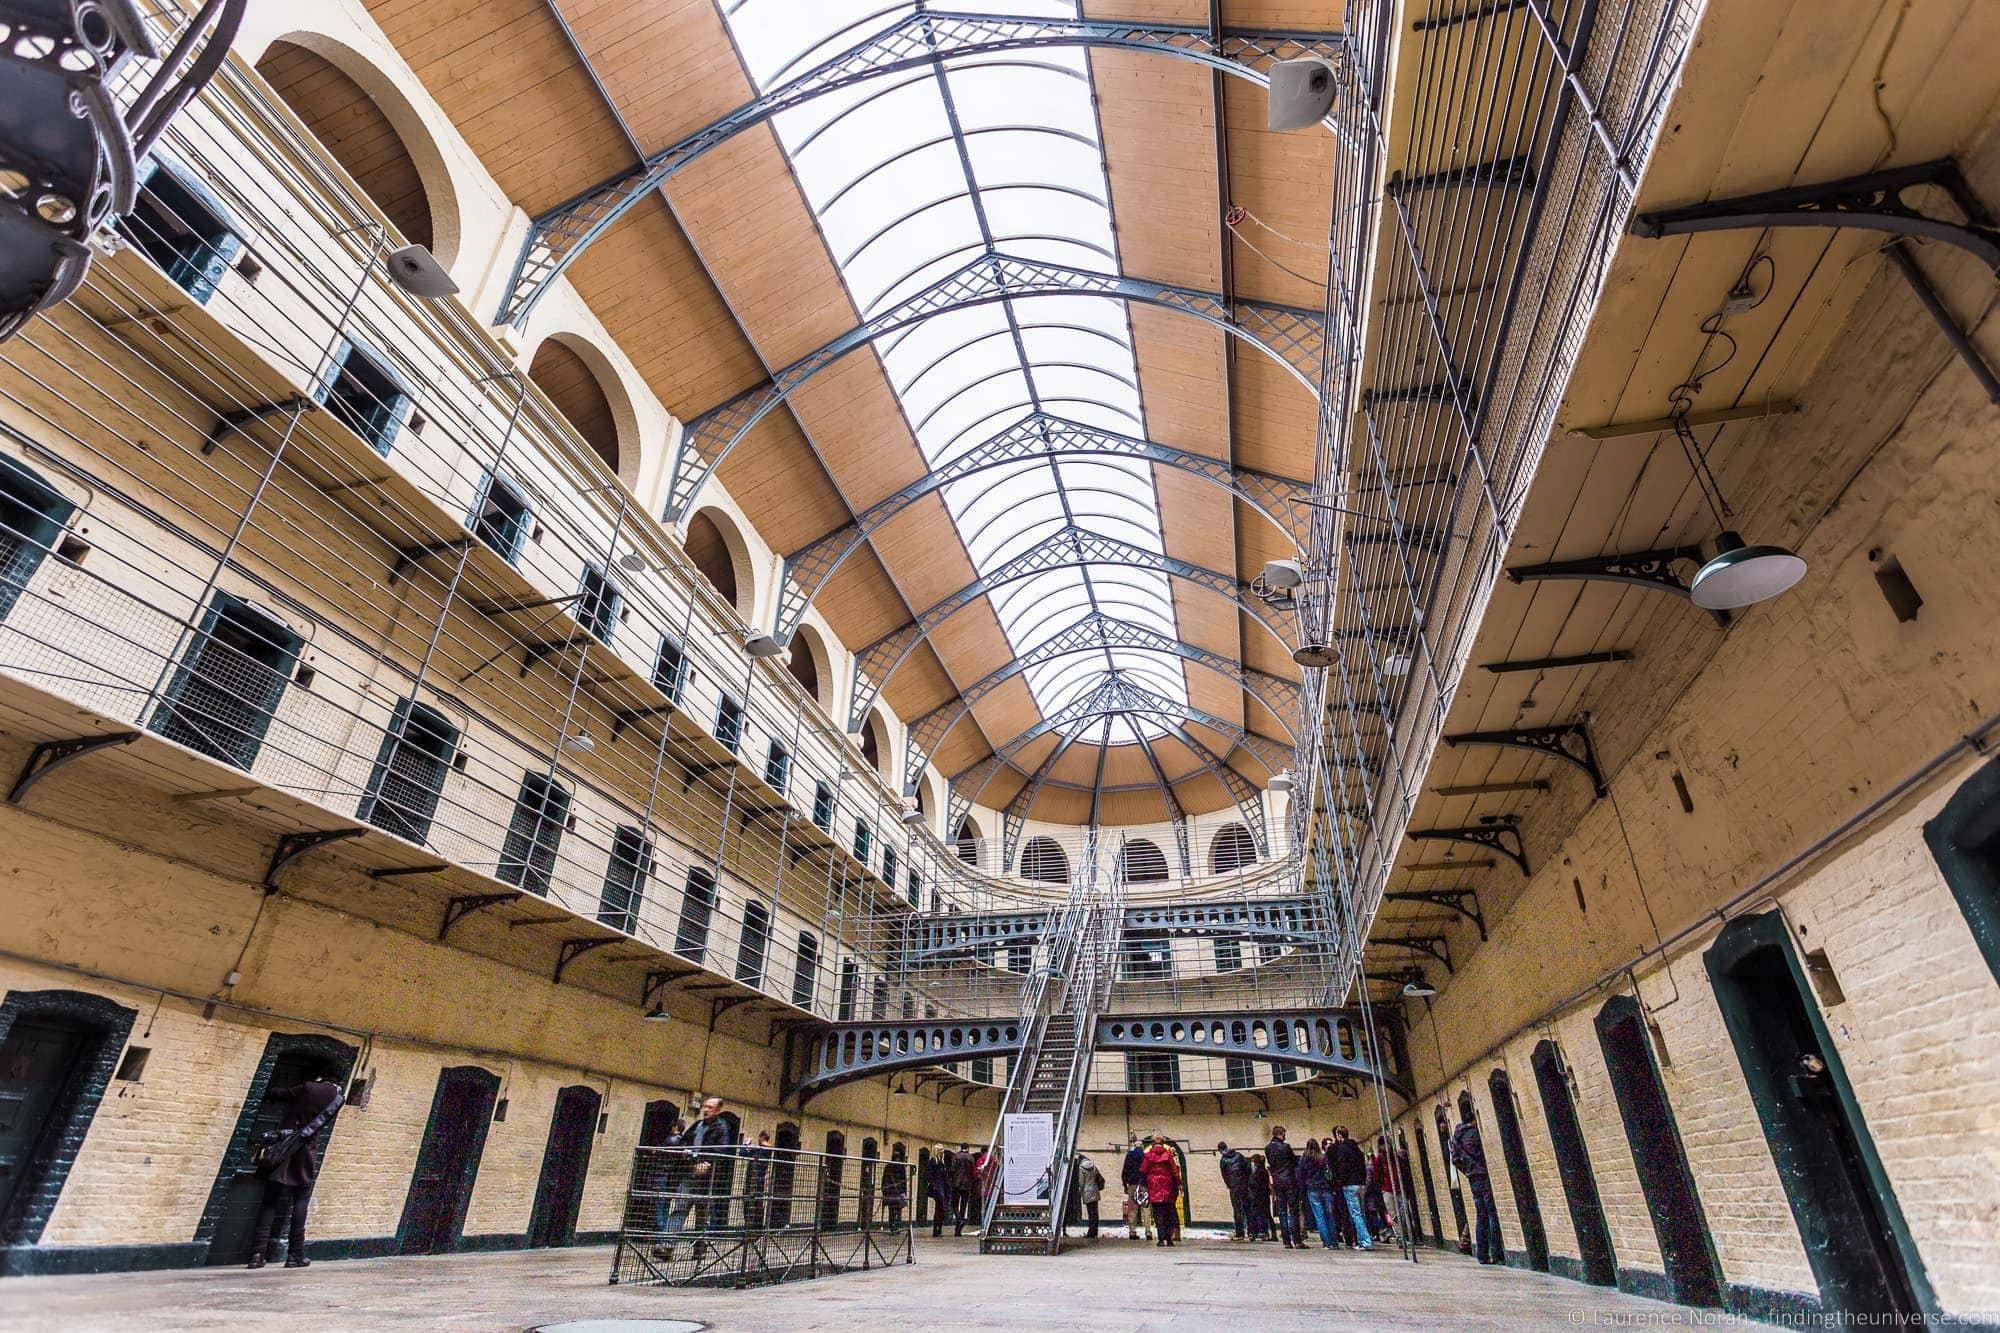 2 Days in Dublin - The Perfect Dublin Itinerary + Map and Tips! Dublin Ireland Attractions Map on denver attractions map, los angeles california attractions map, italy attractions map, ireland sightseeing map, istanbul turkey attractions map, gloucester ma attractions map, orlando area attractions map, montreal canada attractions map, kilkenny ireland map, cancun mexico attractions map, ireland location in world map, rick steves ireland map, dublin walking tour map, cozumel mexico attractions map, dublin city map pdf, dublin tourist map printable, scotland attractions map, dublin street map, kentucky attractions map, valletta malta attractions map,